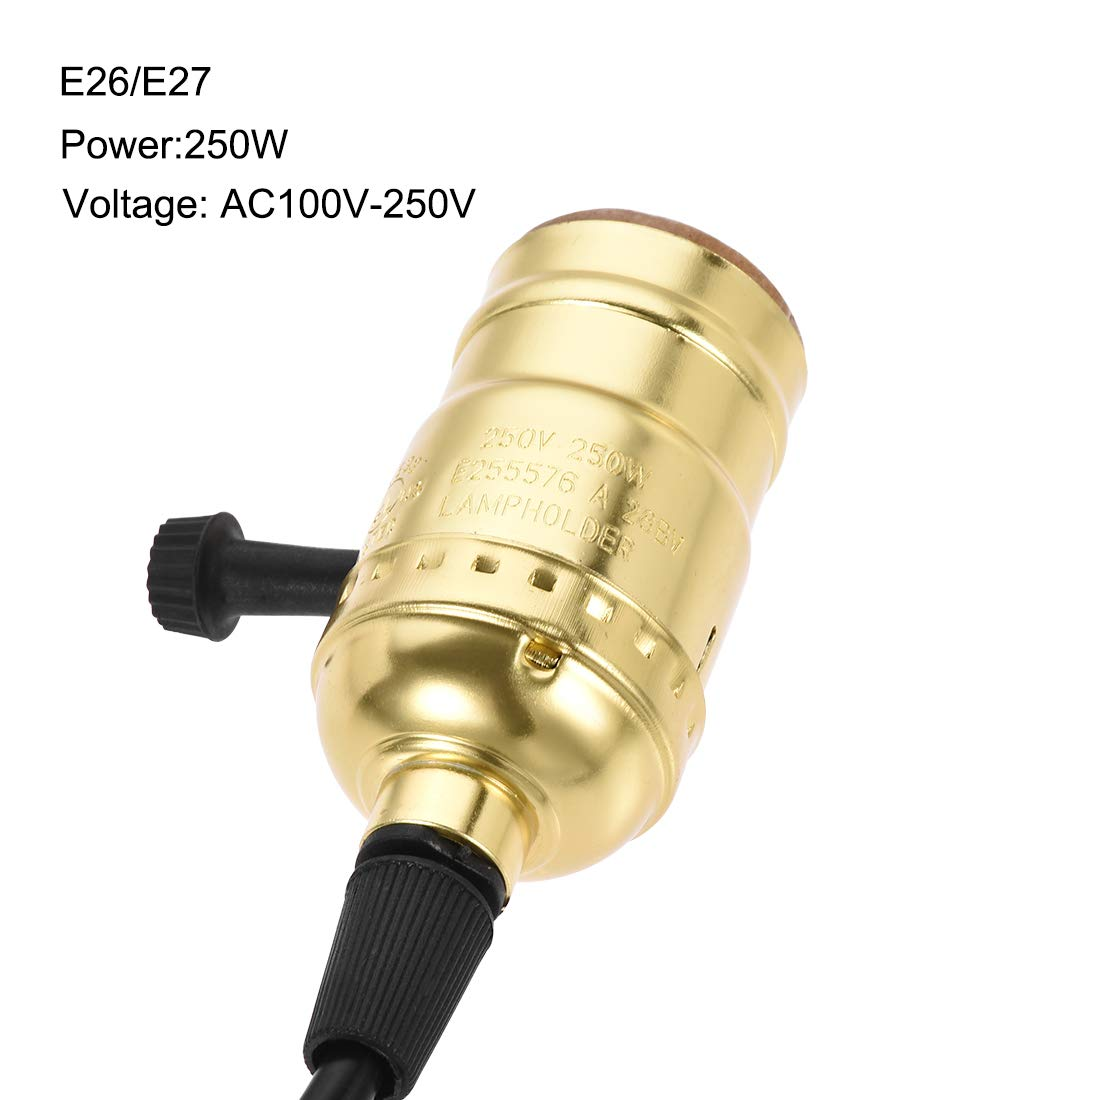 uxcell E26//E27 Pendant Light Kit Thread Bulb Holder Socket Ceiling Lamp Wall Mounted 1.2M Cable with Rotary Switch Gold Tone